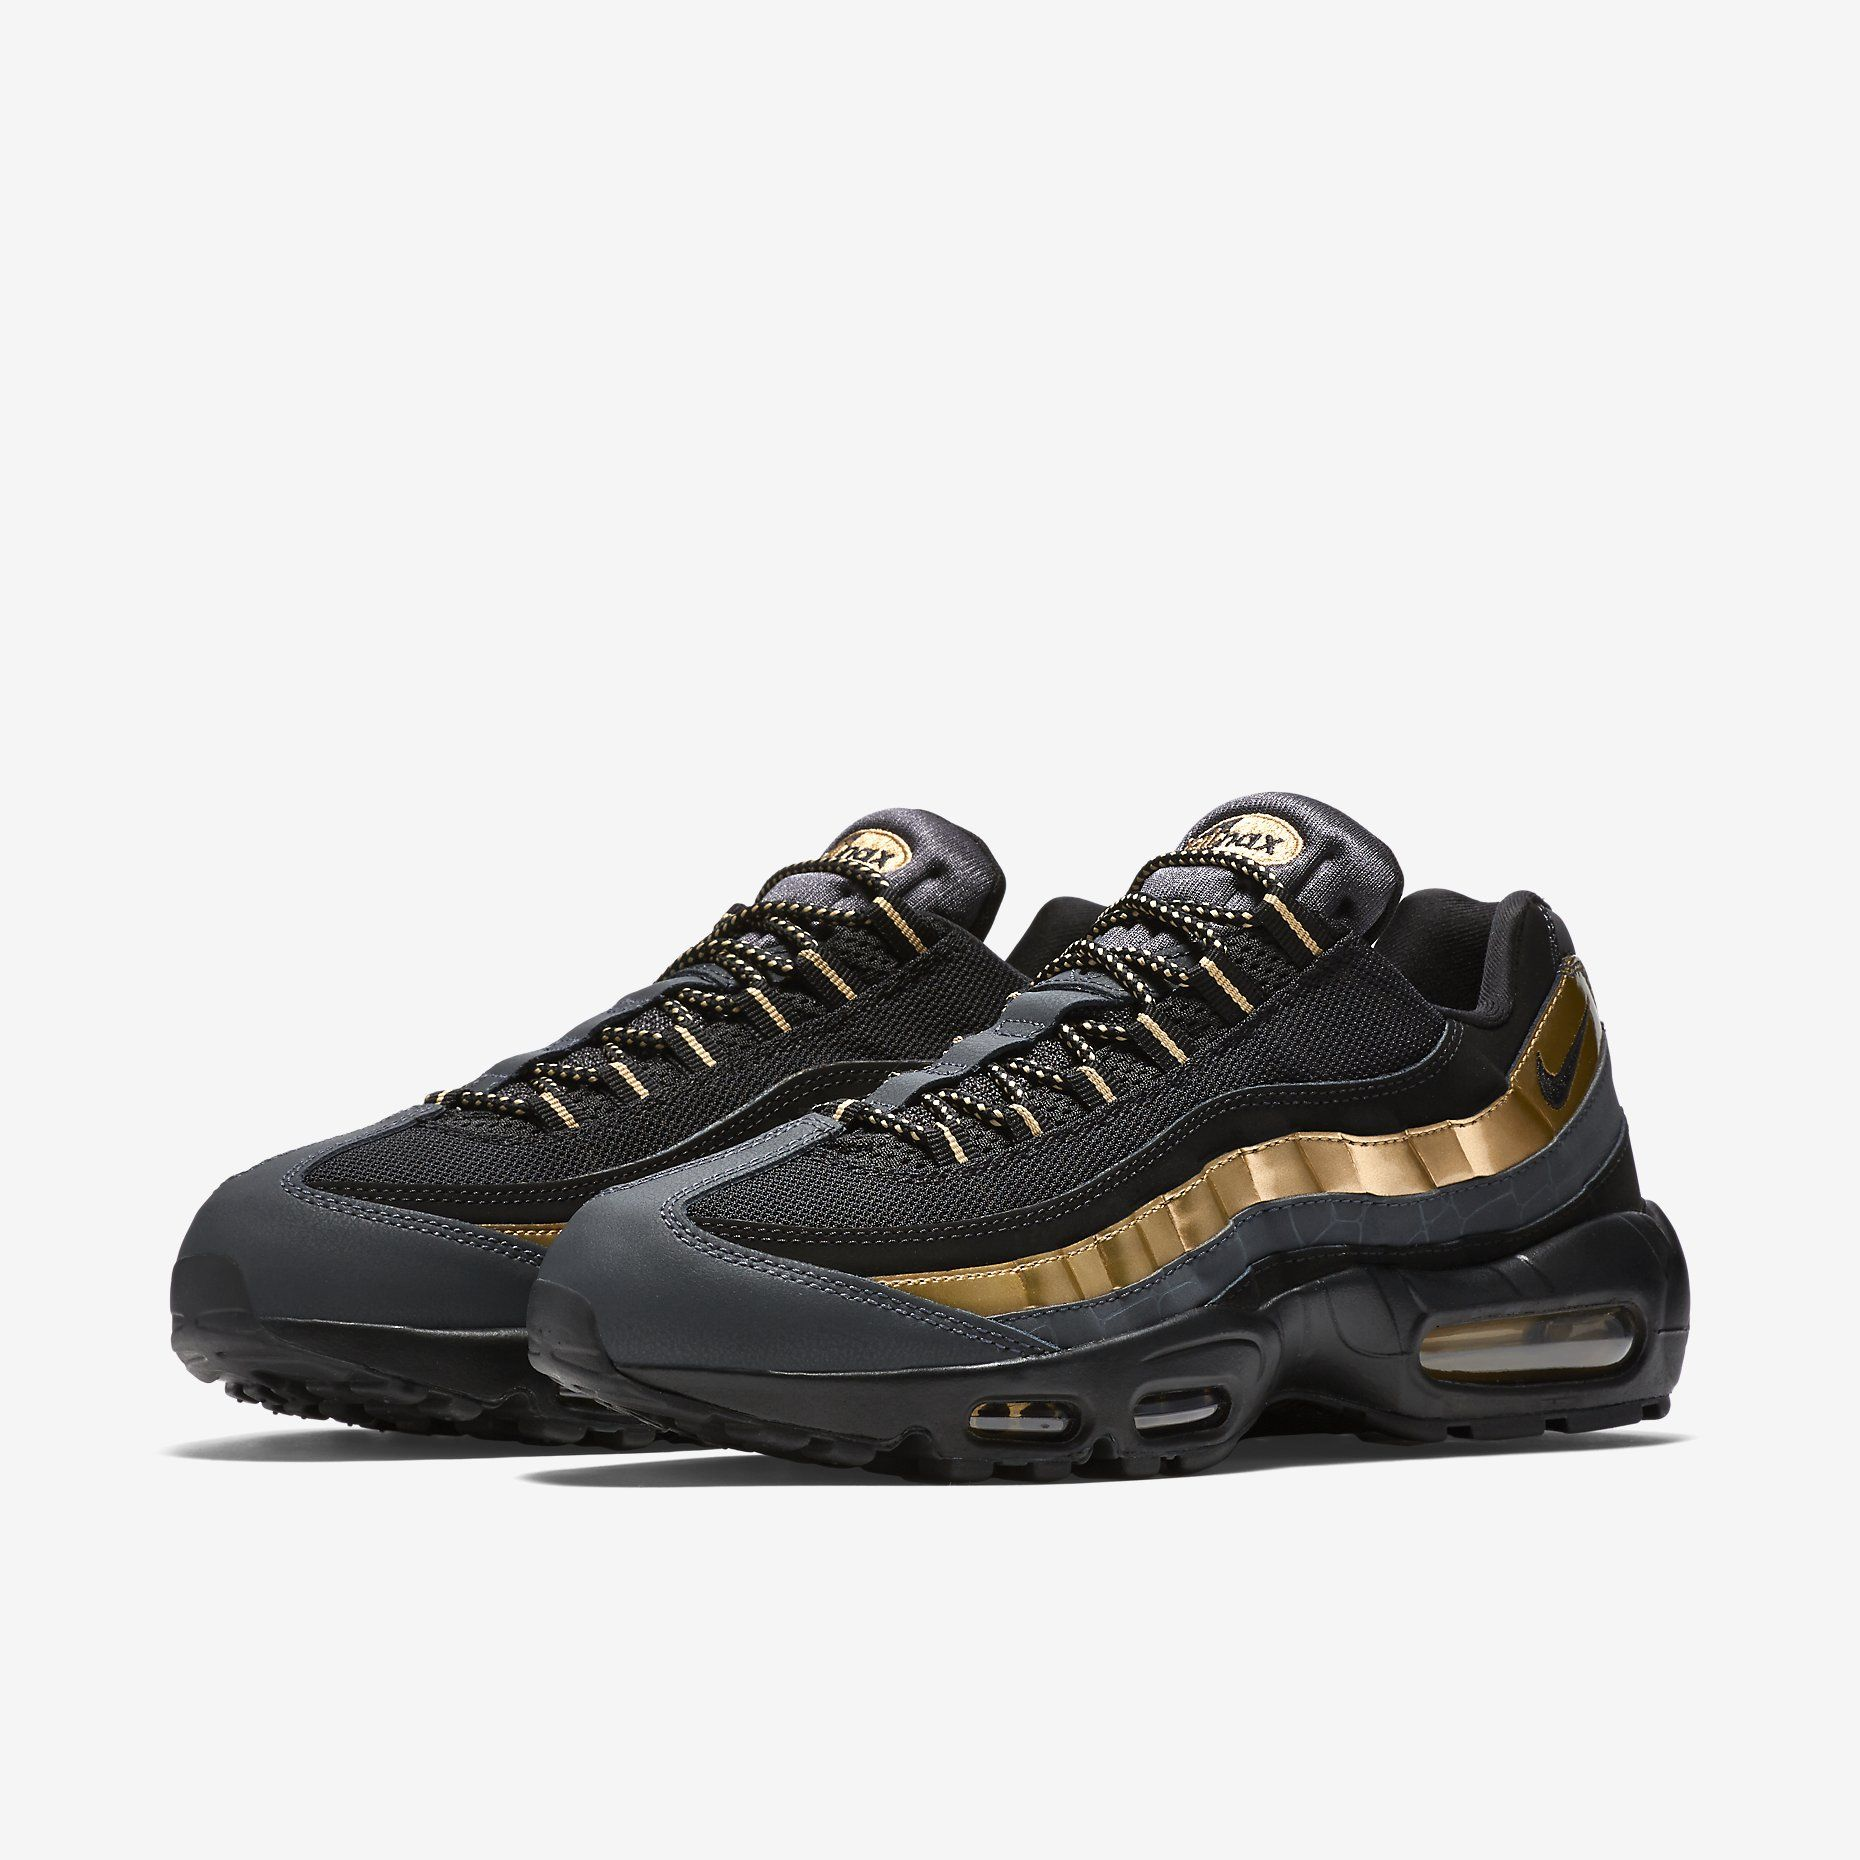 7e1352ba53156 The Return Of The Nike Air Max 95